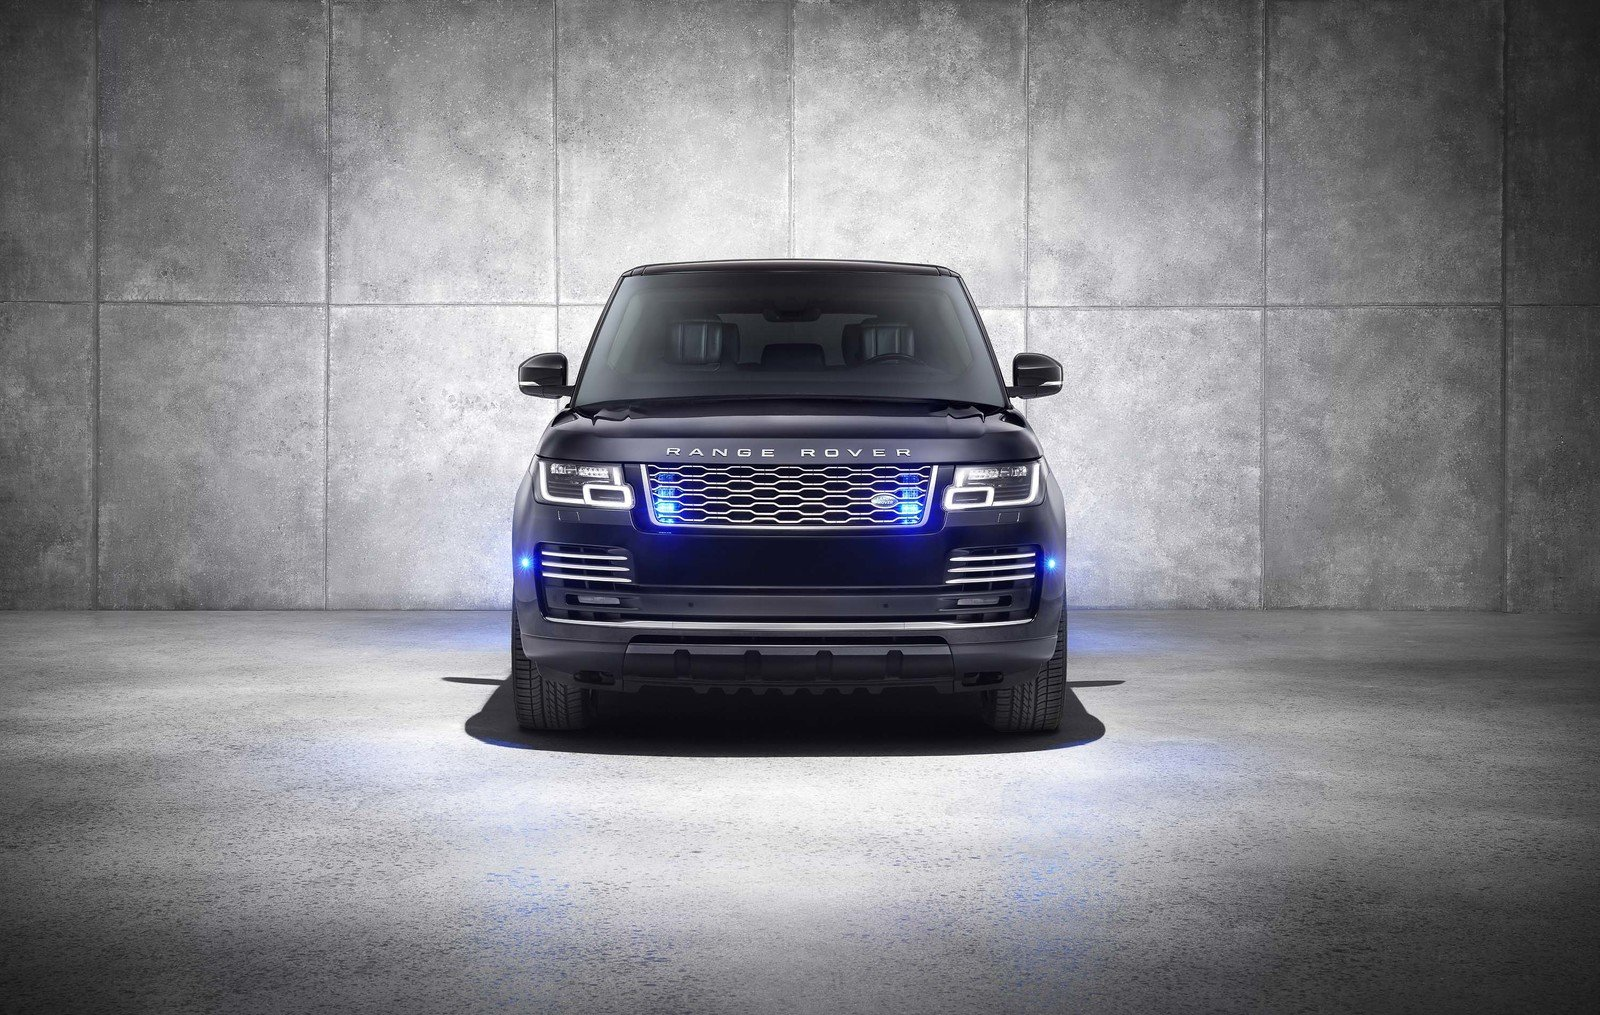 2020 Land Rover Range Rover Sentinel Pictures Photos